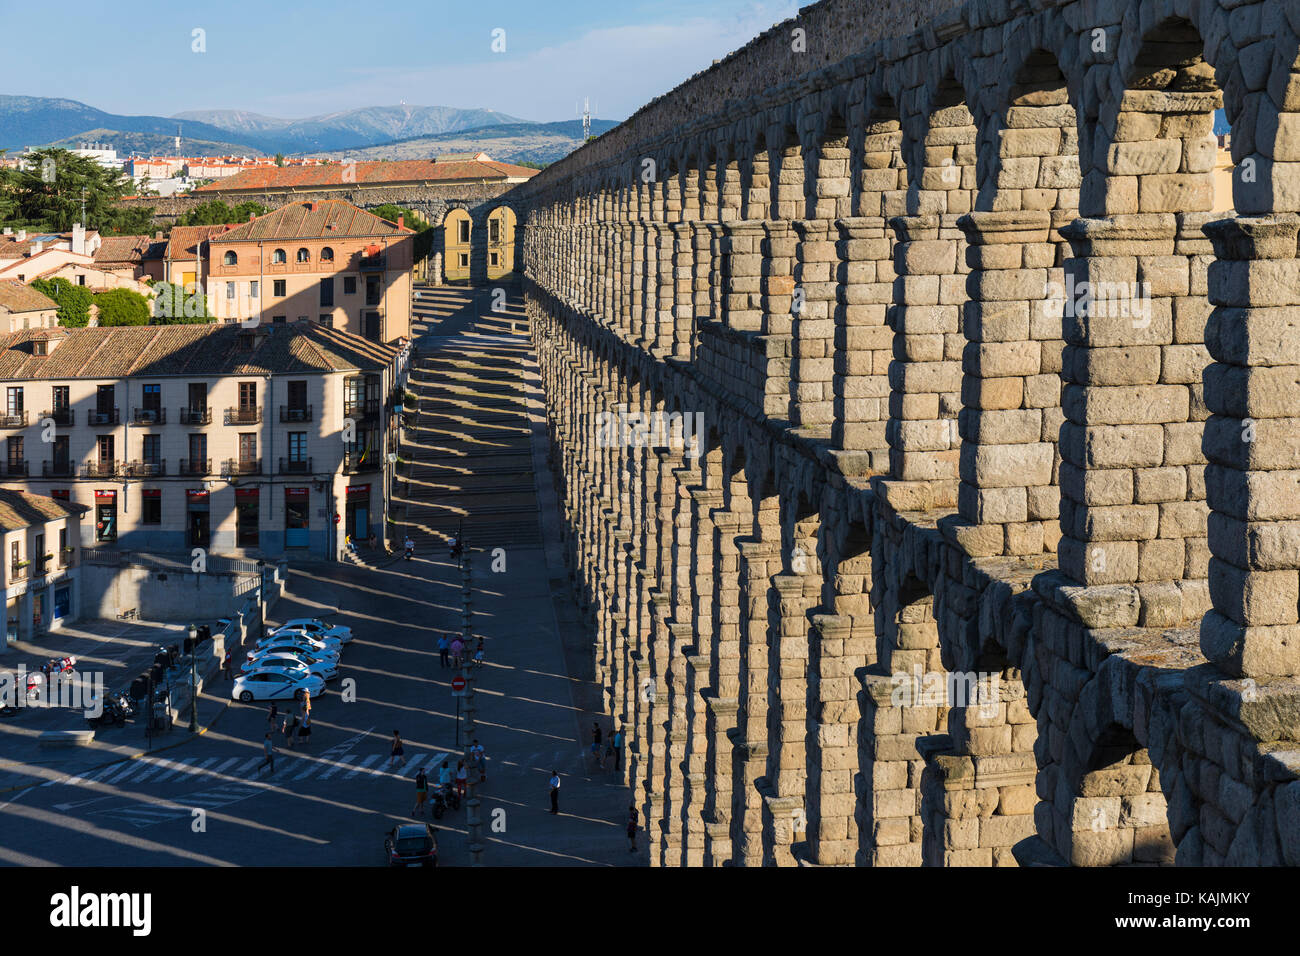 Segovia, Segovia Province, Castile and Leon, Spain.  The Roman Aqueduct which dates from the 1st or 2nd century - Stock Image